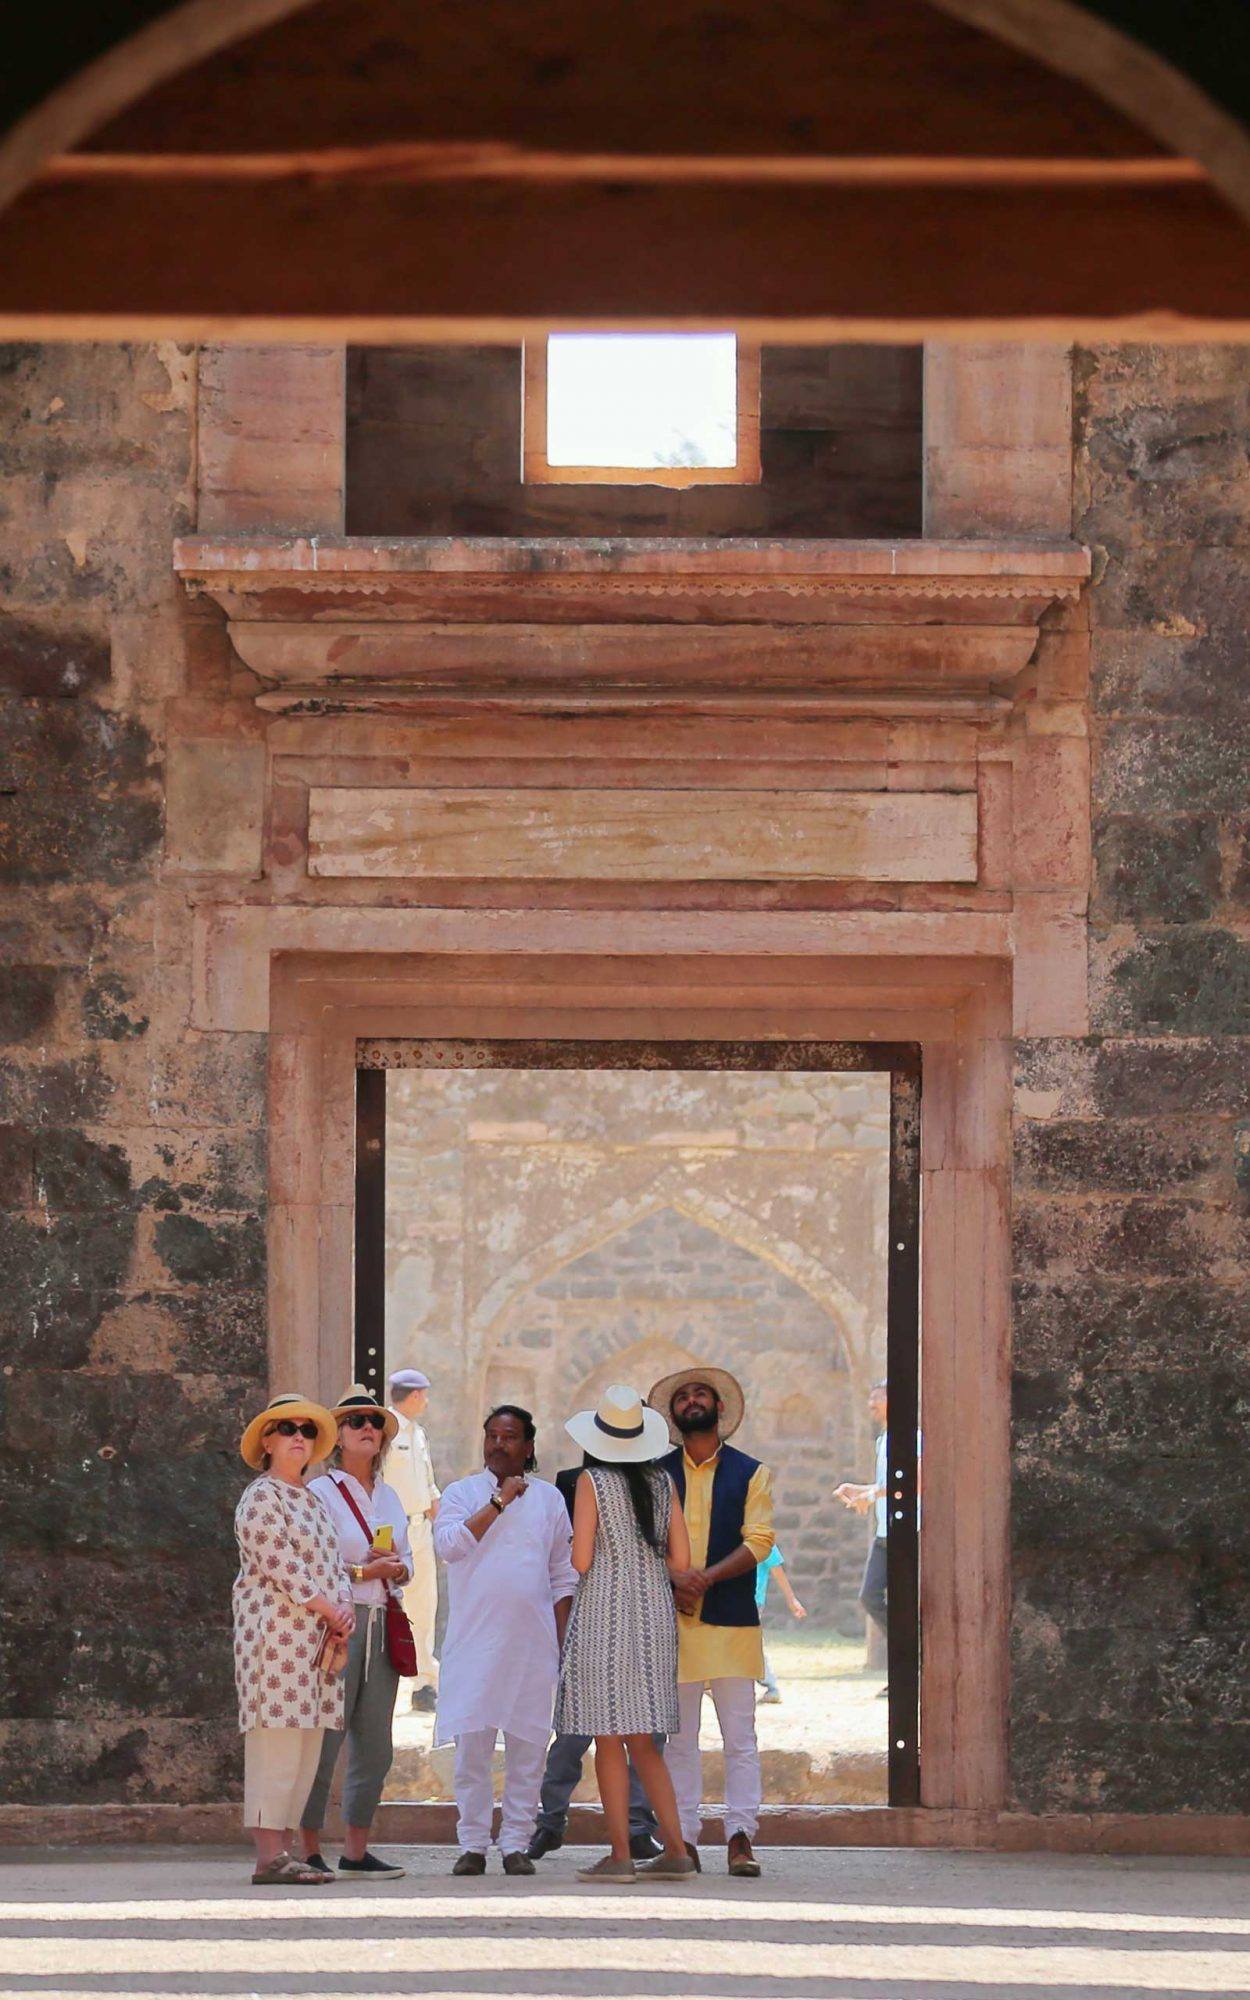 Hillary Clinton visits the remains of the Hindola Mahal monument, part of an abandoned royal palace complex, while on a personal trip to the ancient city of Mandu in India's Madhya Pradesh state on March 12, 2018.